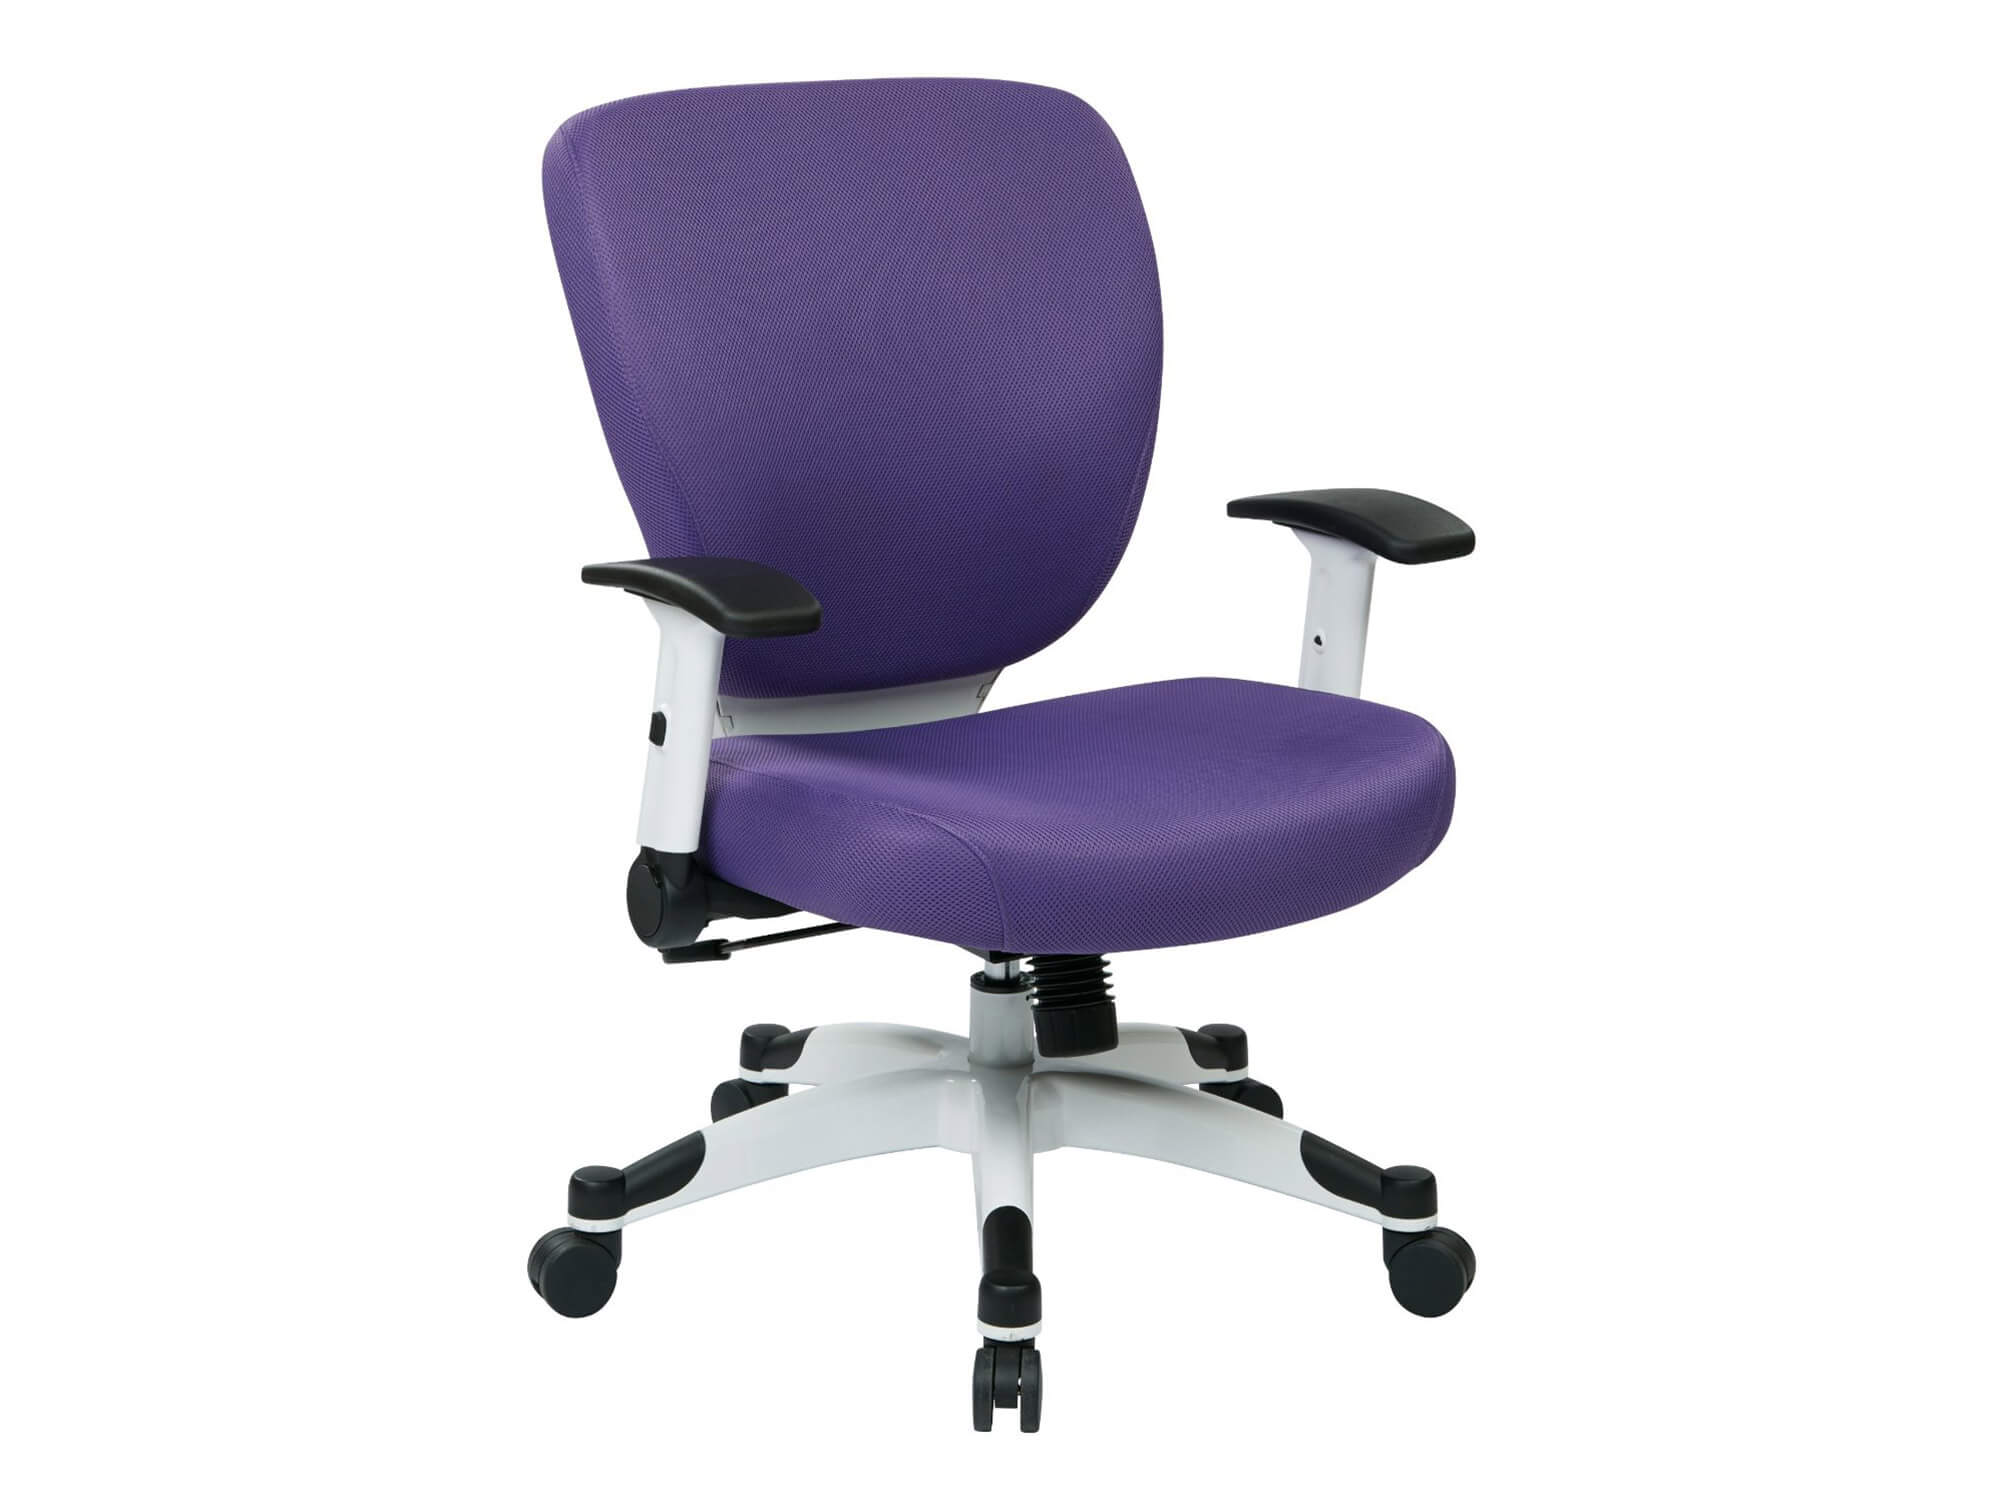 Office task chairs CUB 5200W 512 PSO